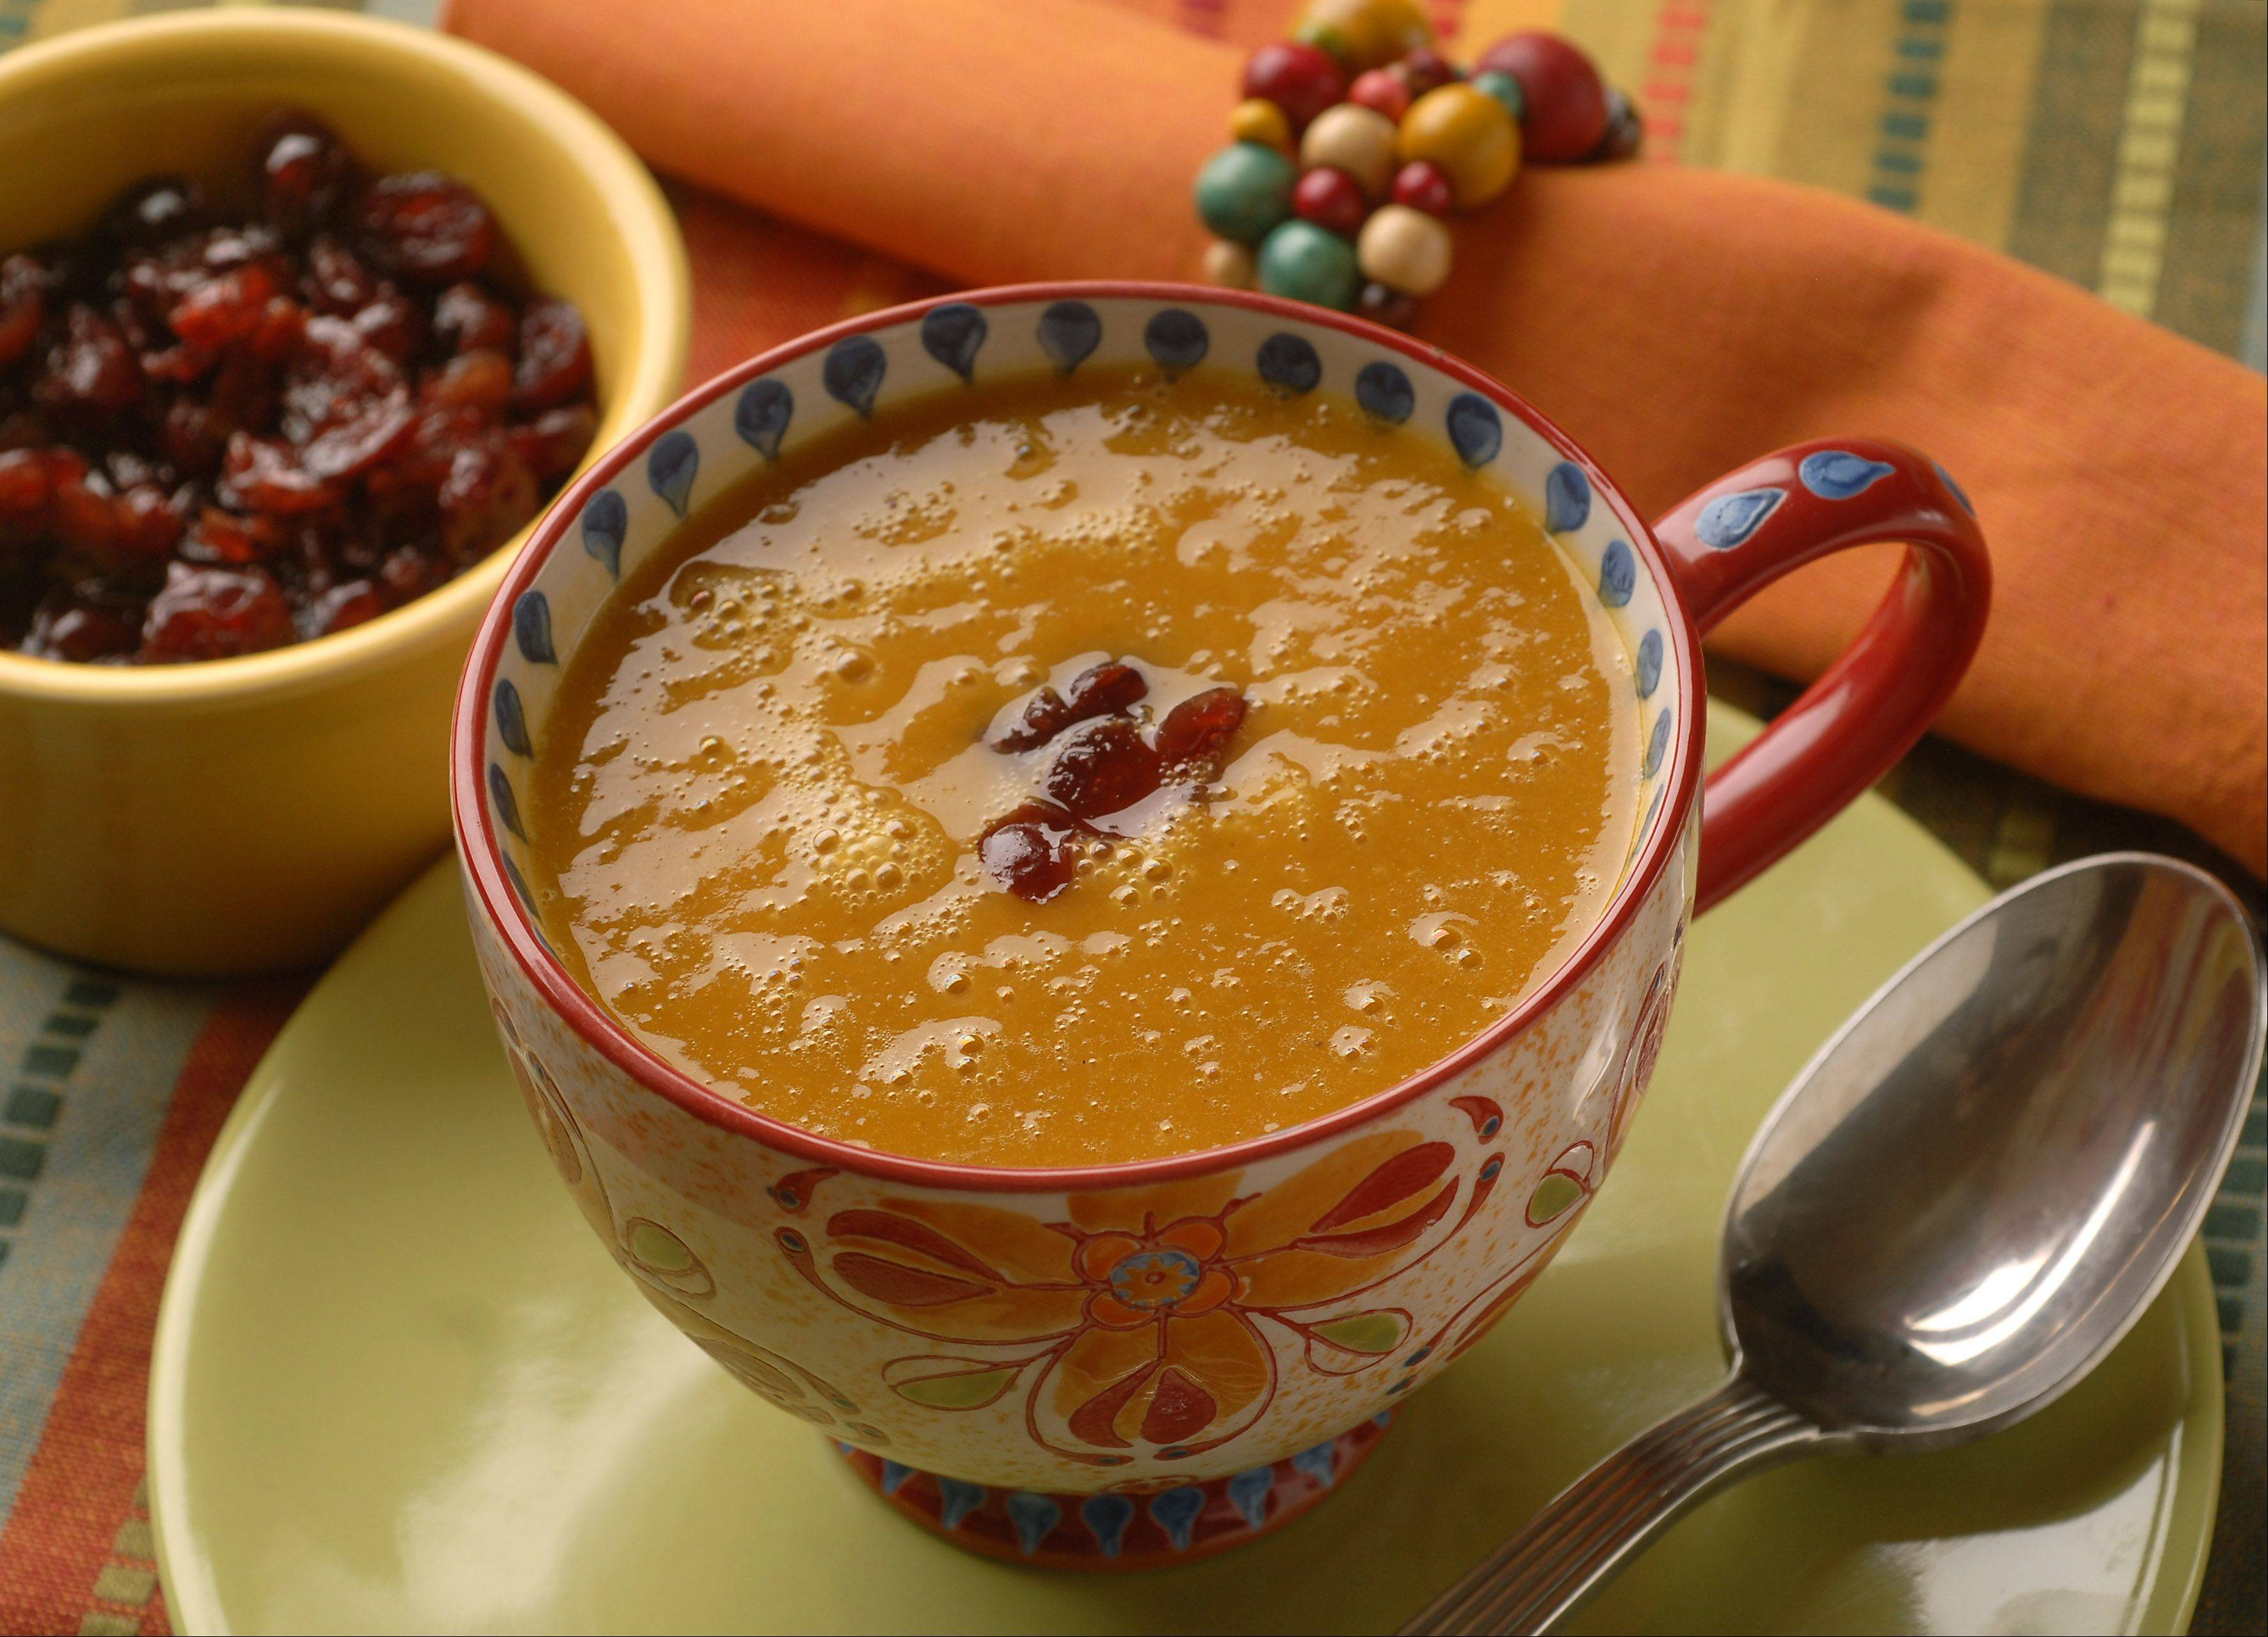 Turn cans of pumpkin leftover from holiday baking into a creamy soup accented by sherry-soaked cranberries.